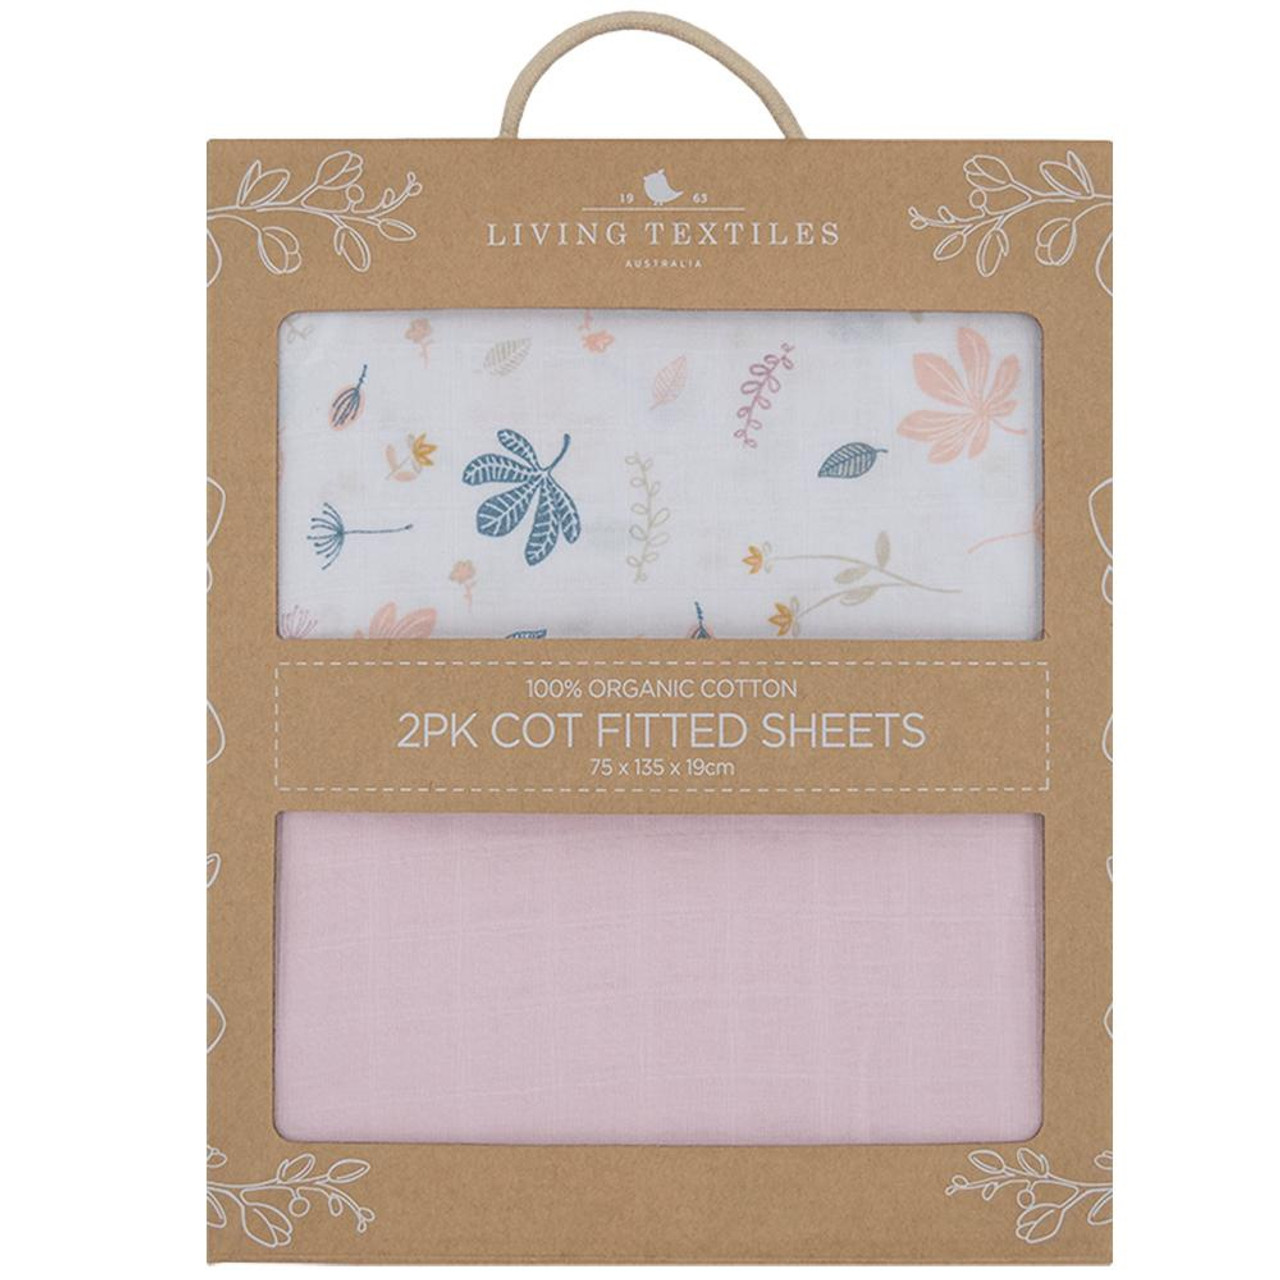 Living Textiles Organic Cotton Muslin Cot Fitted Sheets 2pk at Baby Barn Discounts Living Textiles's fitted sheets crafted from love and created for bliss these luxurious fitted cot sheets lay smooth beneath your little one